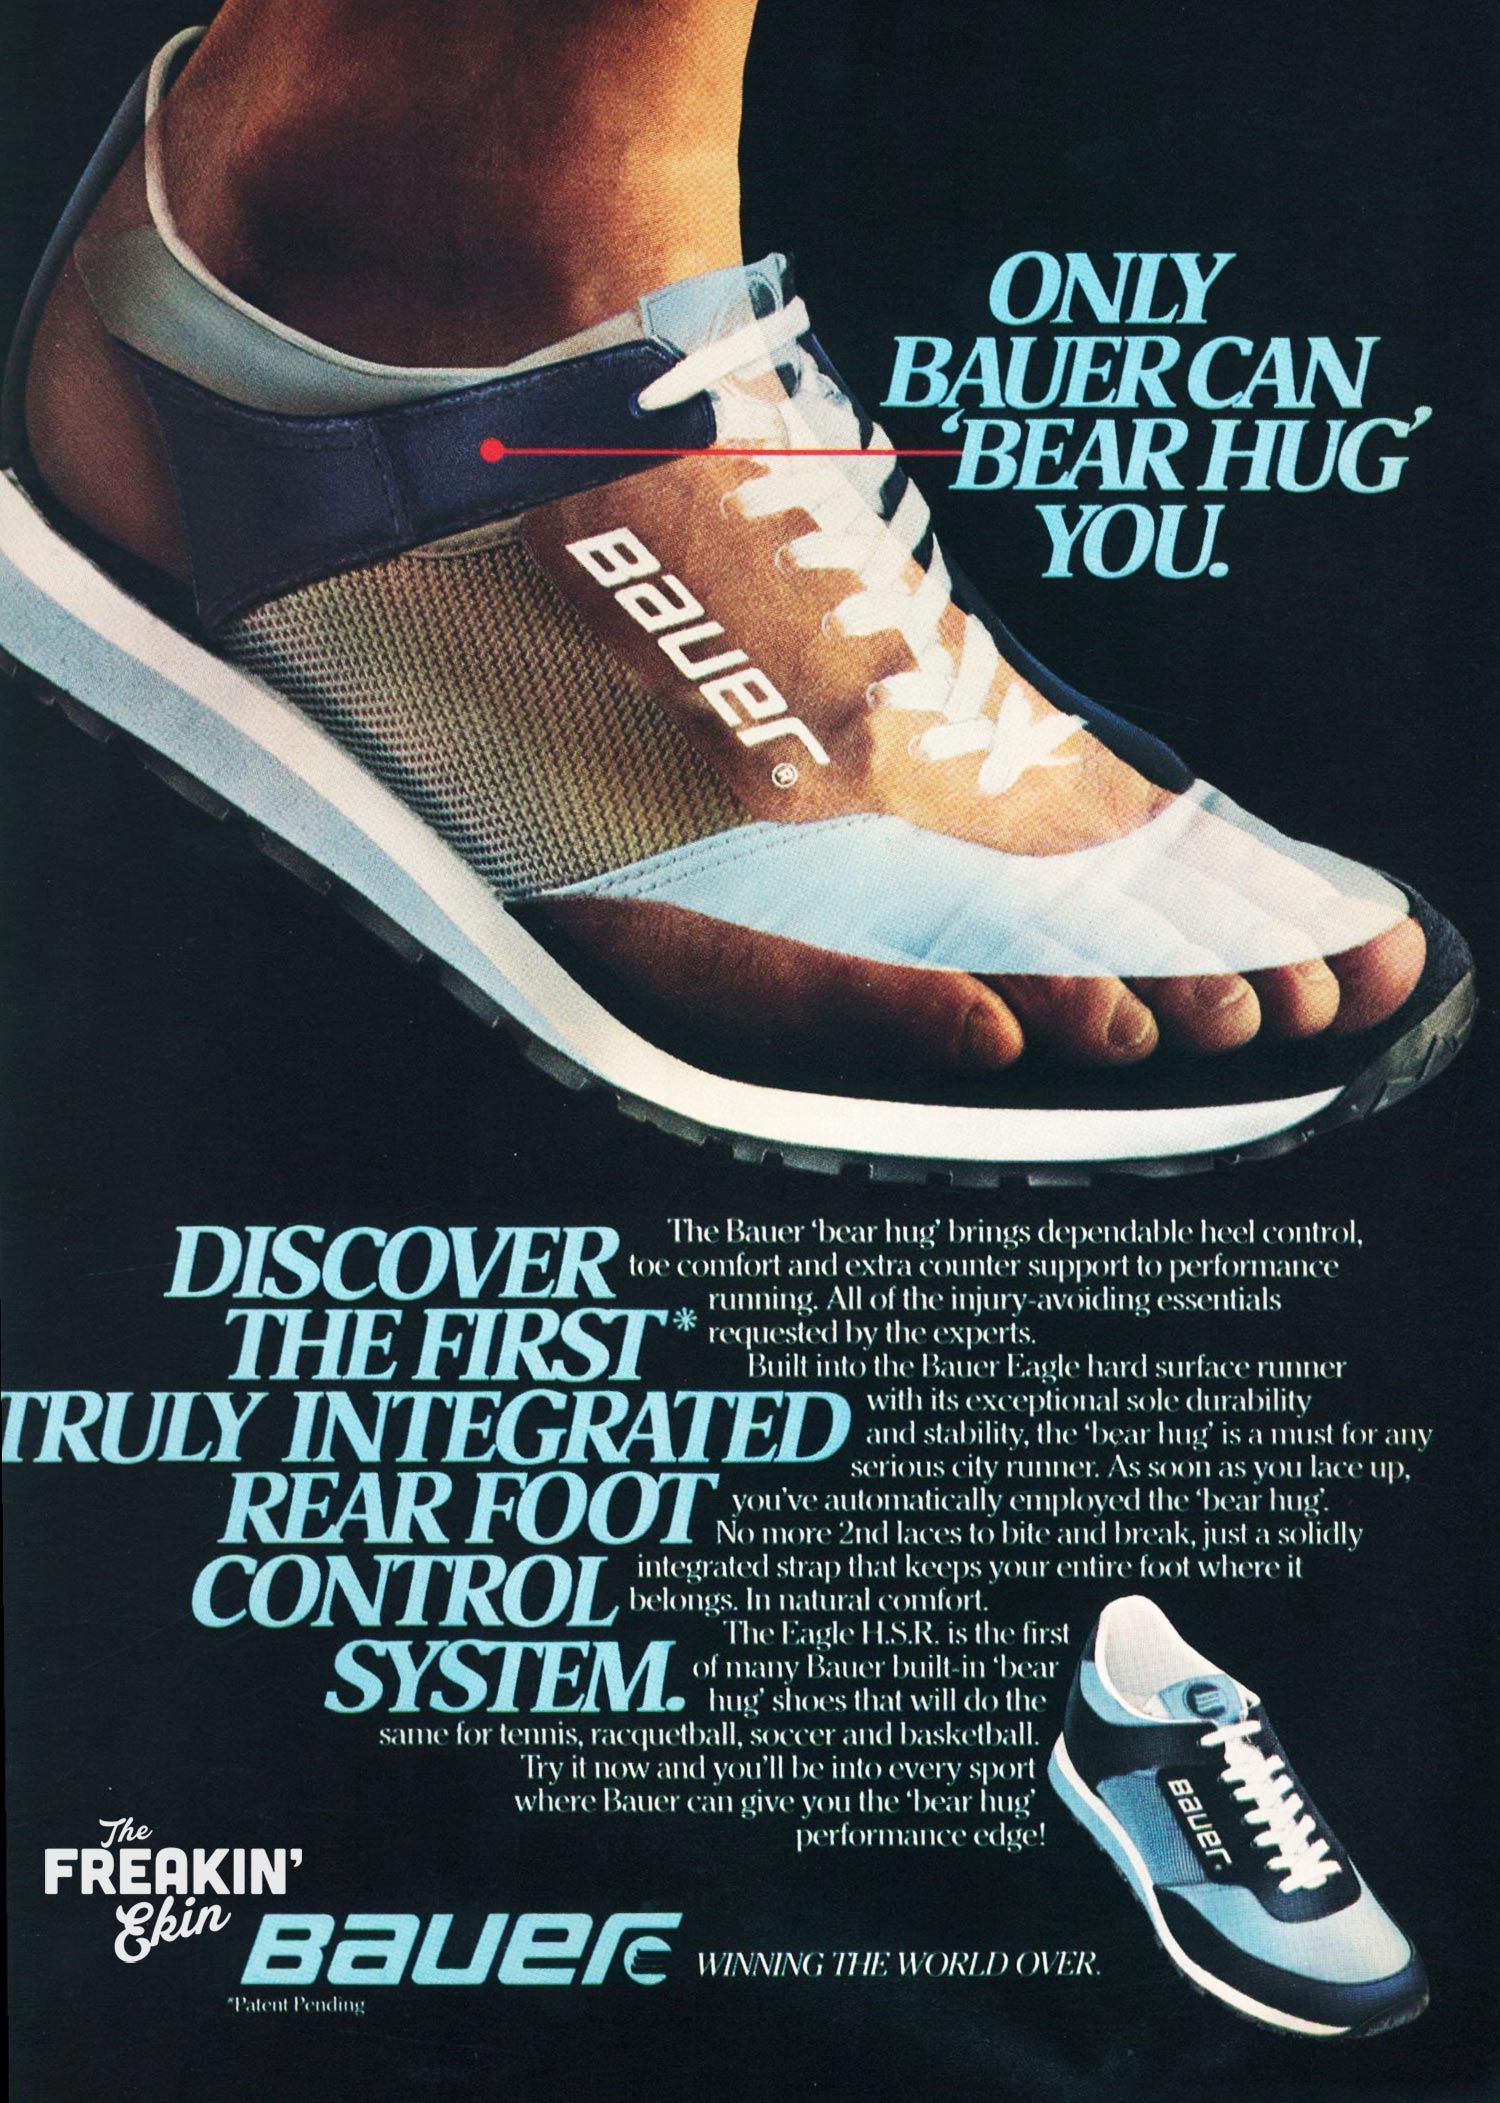 86d2dca30b831 Bauer Eagle H.S.R 1980  Bear Hug  vintage running shoes ad   The Freakin   Ekin